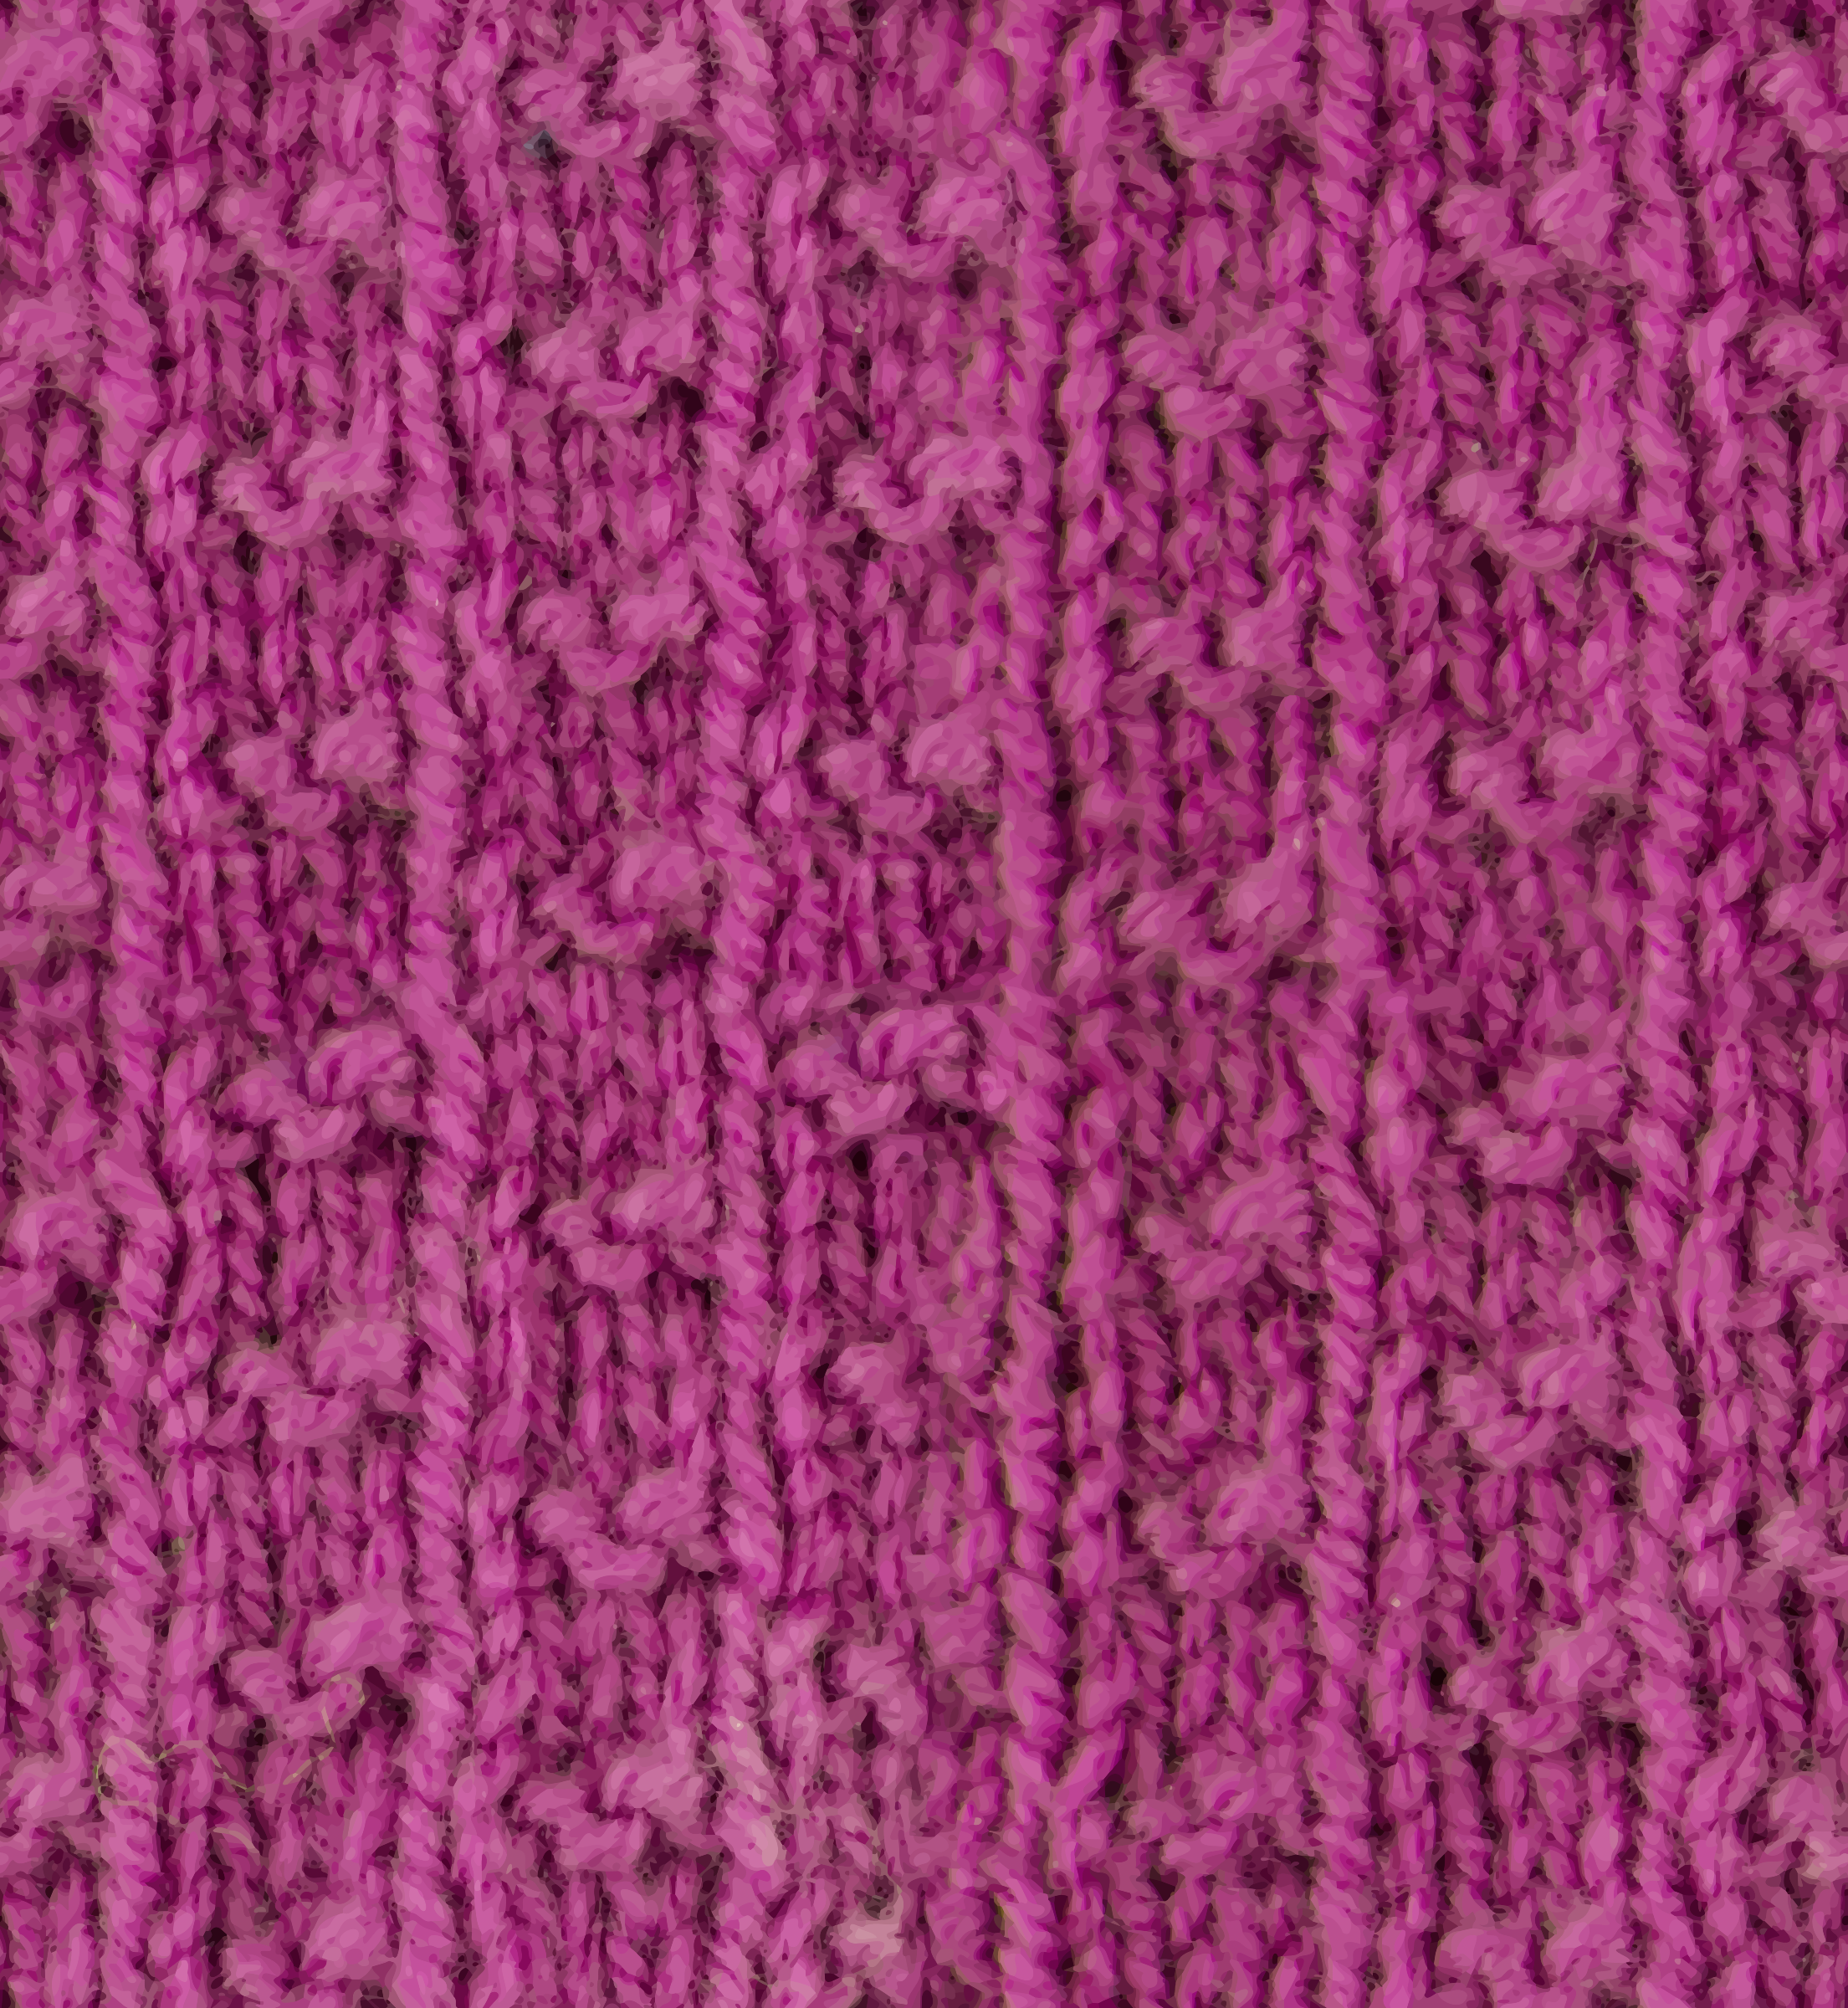 Knitted wool 2 (colour 3) by Firkin